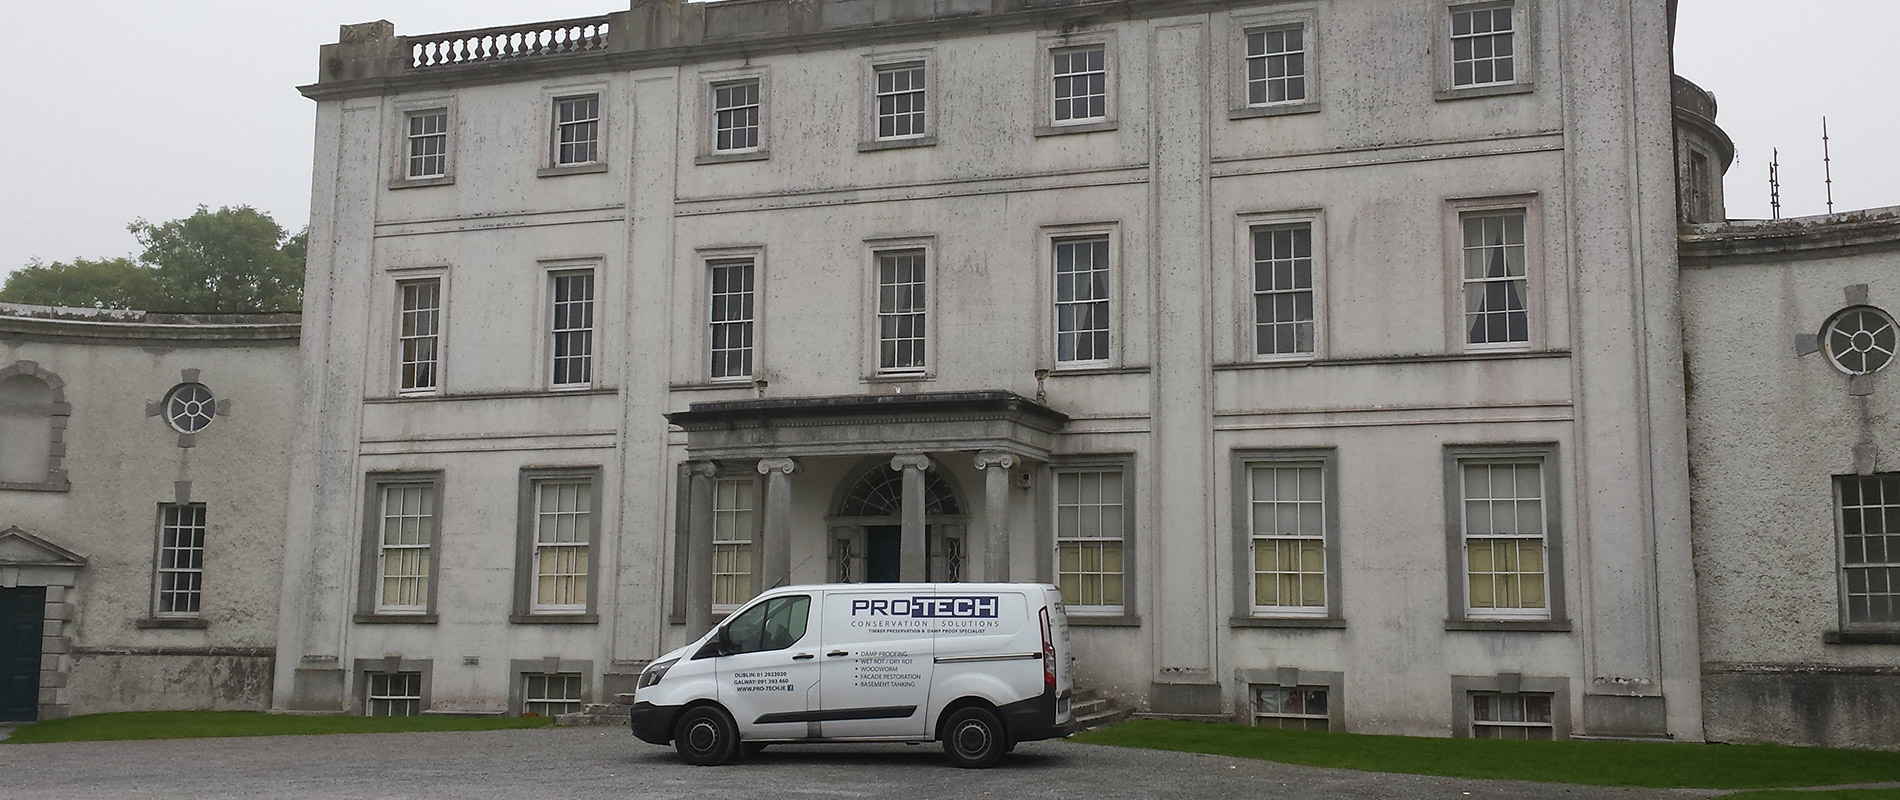 renovation specialists in Galway